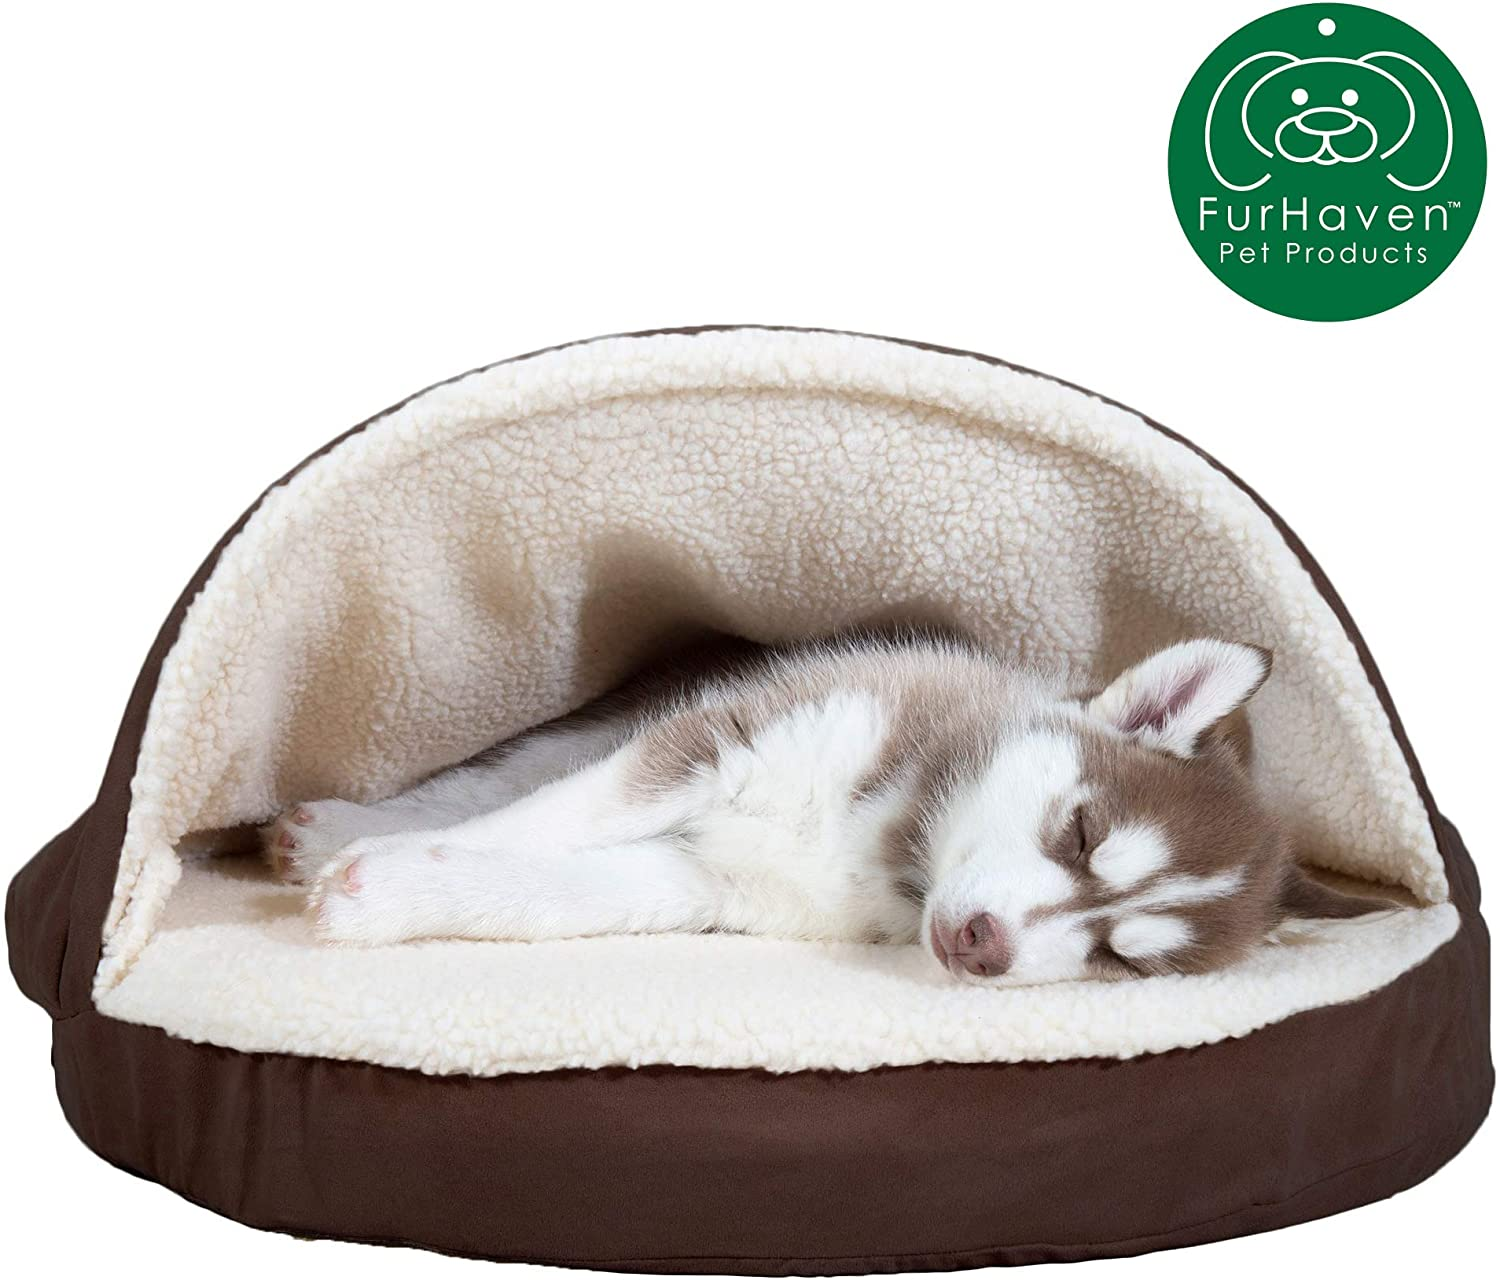 husky puppy lying in a cave style dog bed